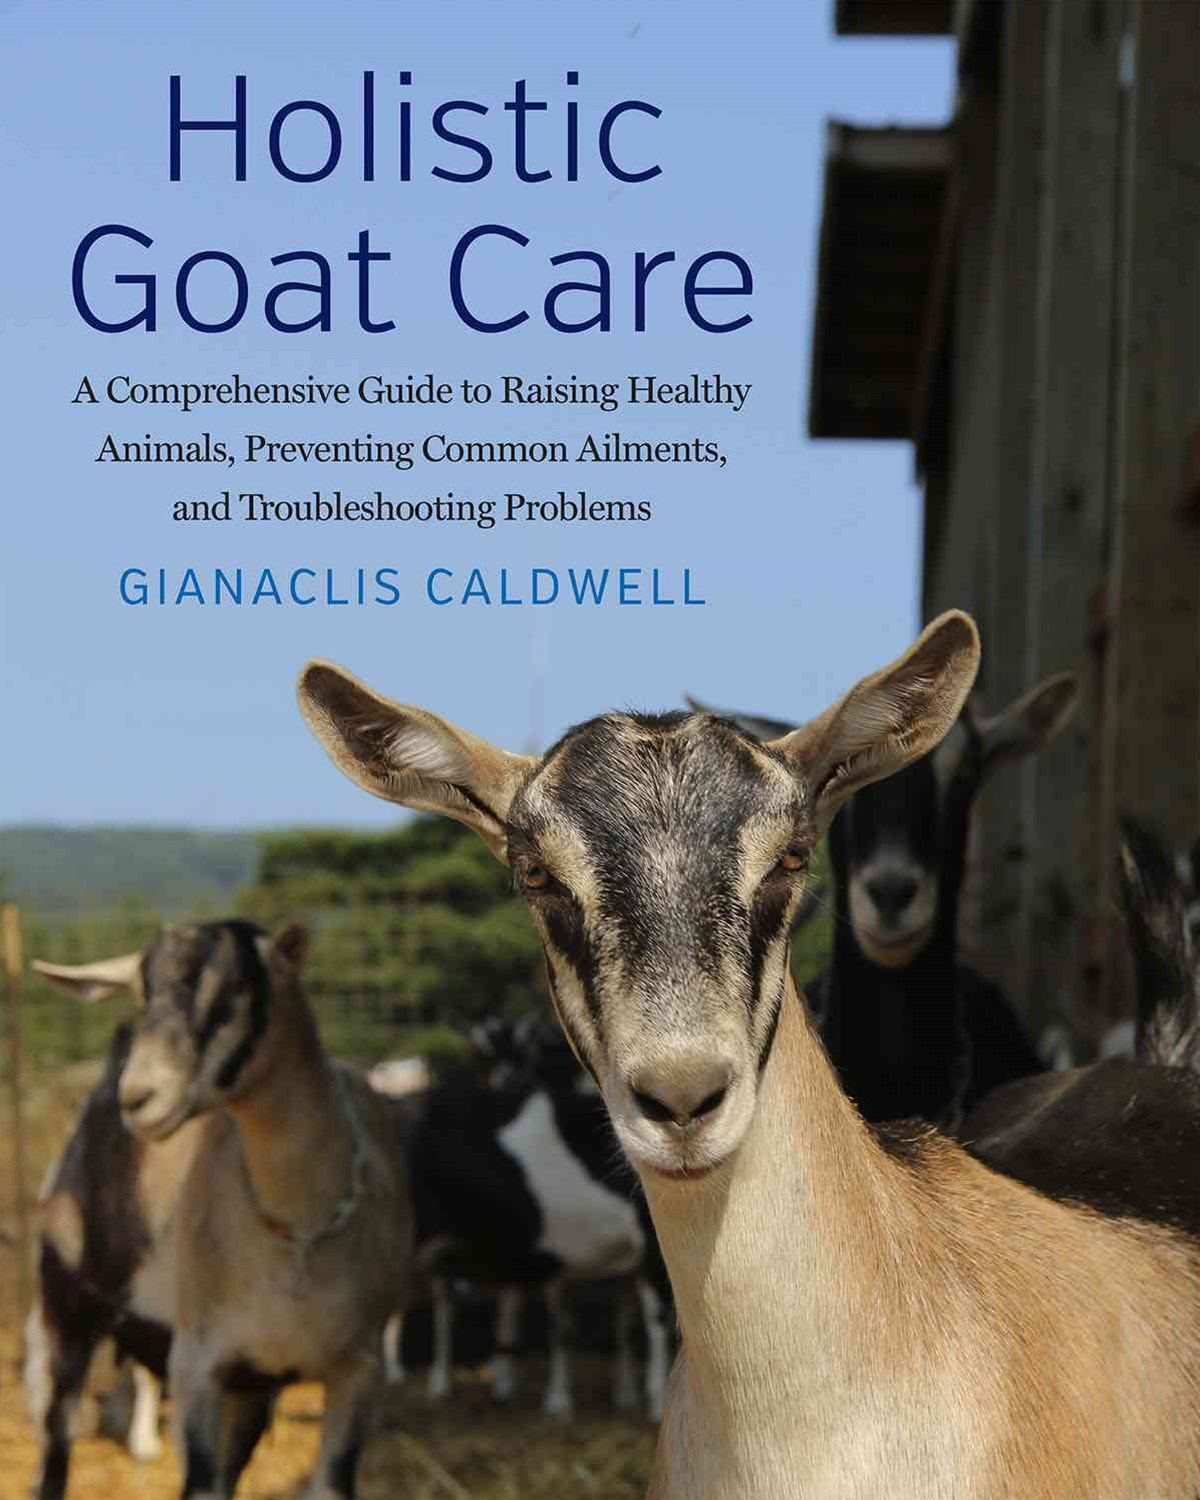 Holistic Goat Care: A Comprehensive Guide to Raising Healthy Animals, Preventing Common Ailments, a